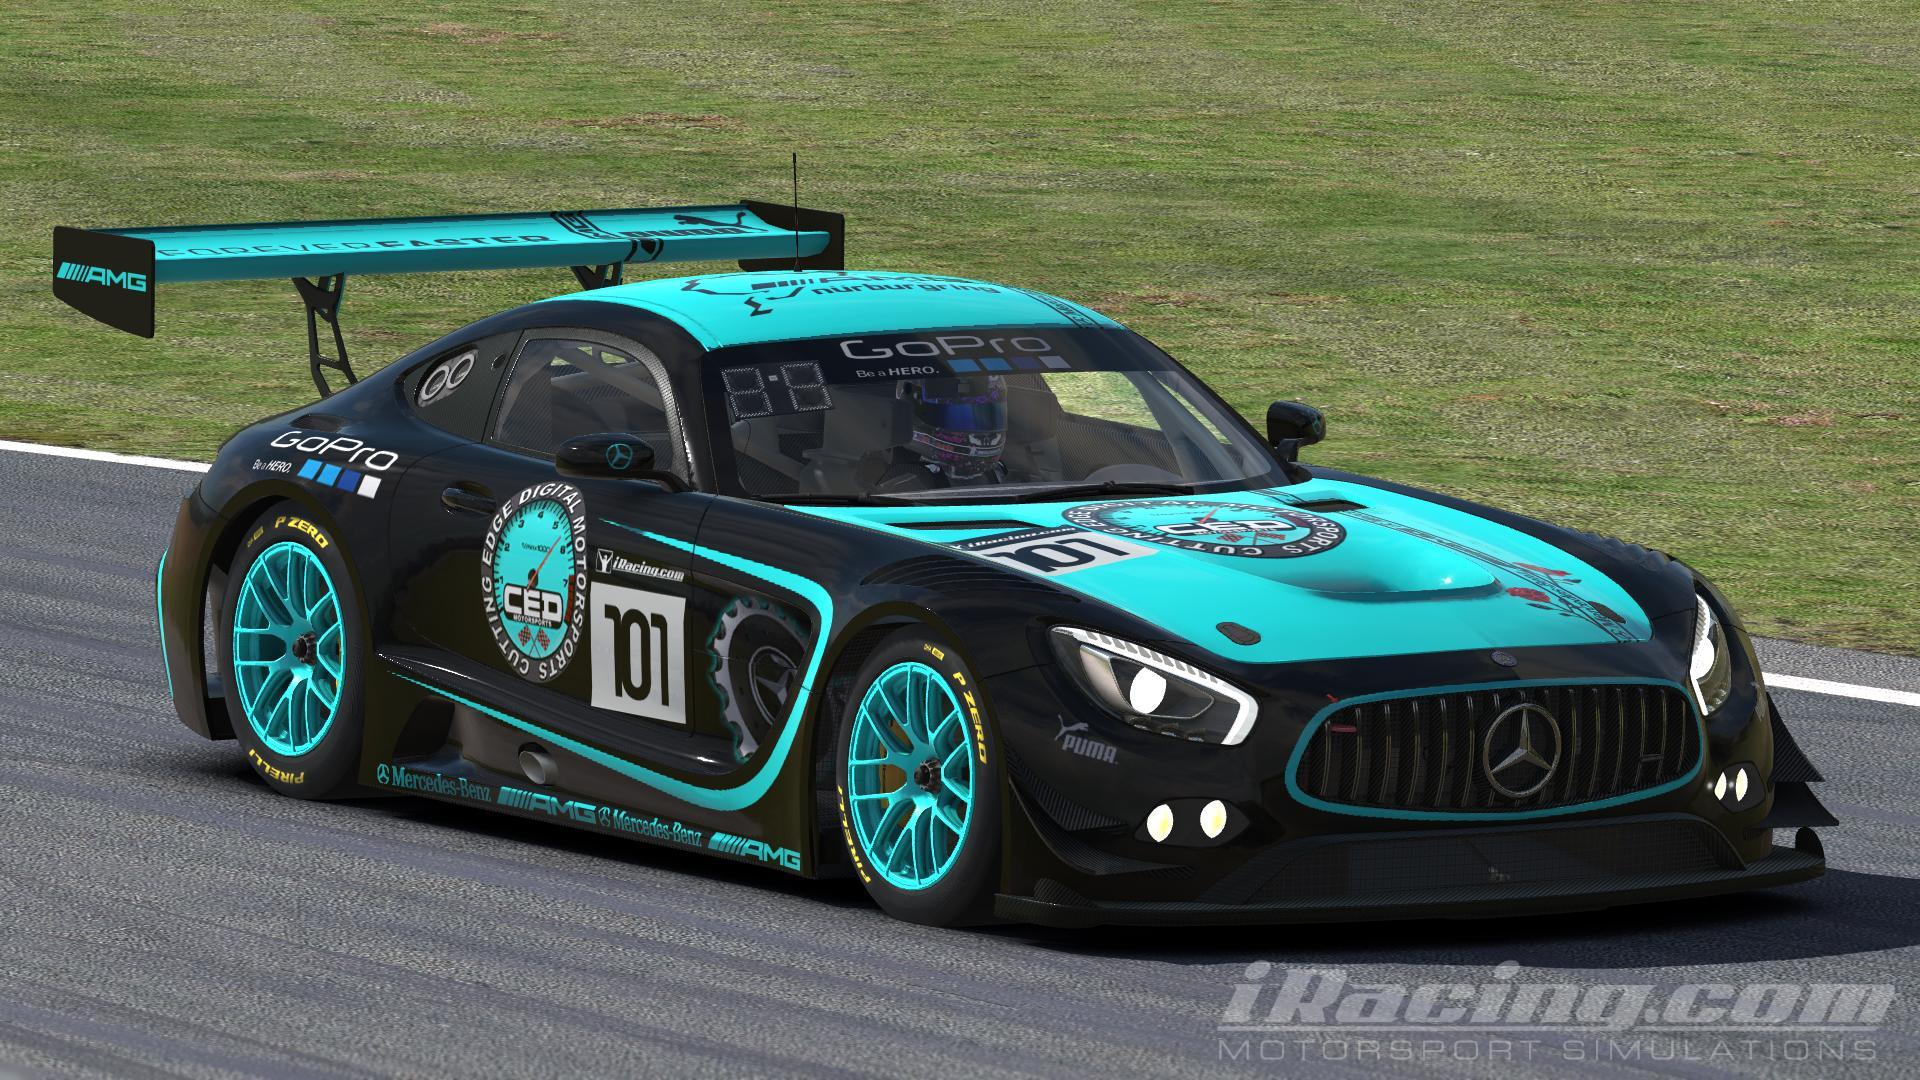 Race cars paint designs custom race car design for Car paint designs pictures